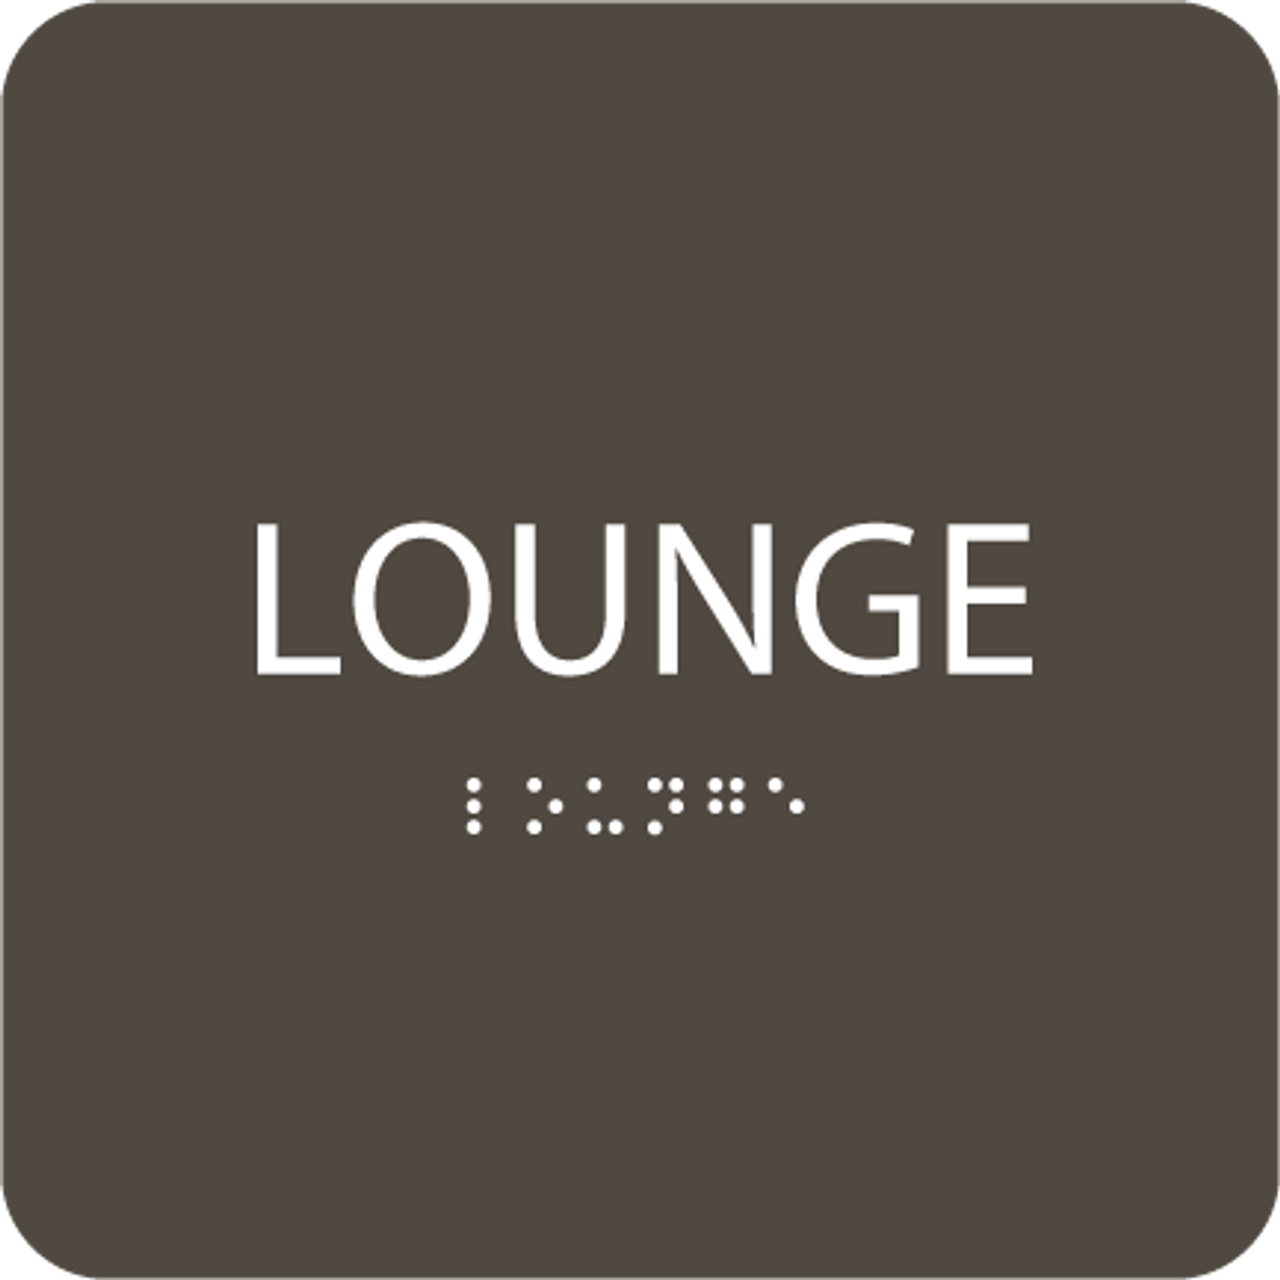 "Lounge ADA Sign - 6"" x 6"""